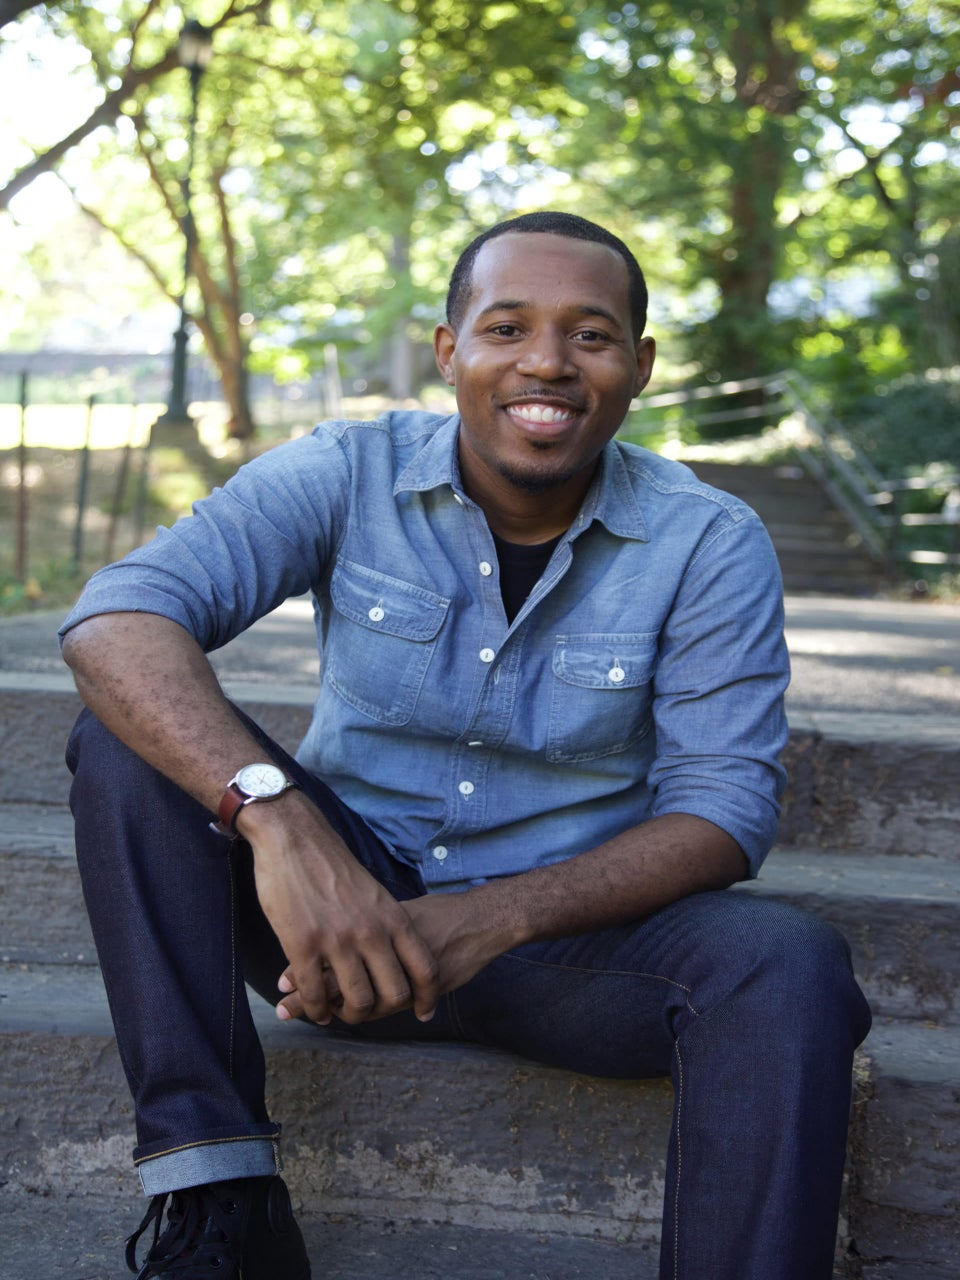 Alvin Irby Wants To Help Young Children Fall In Love With Reading